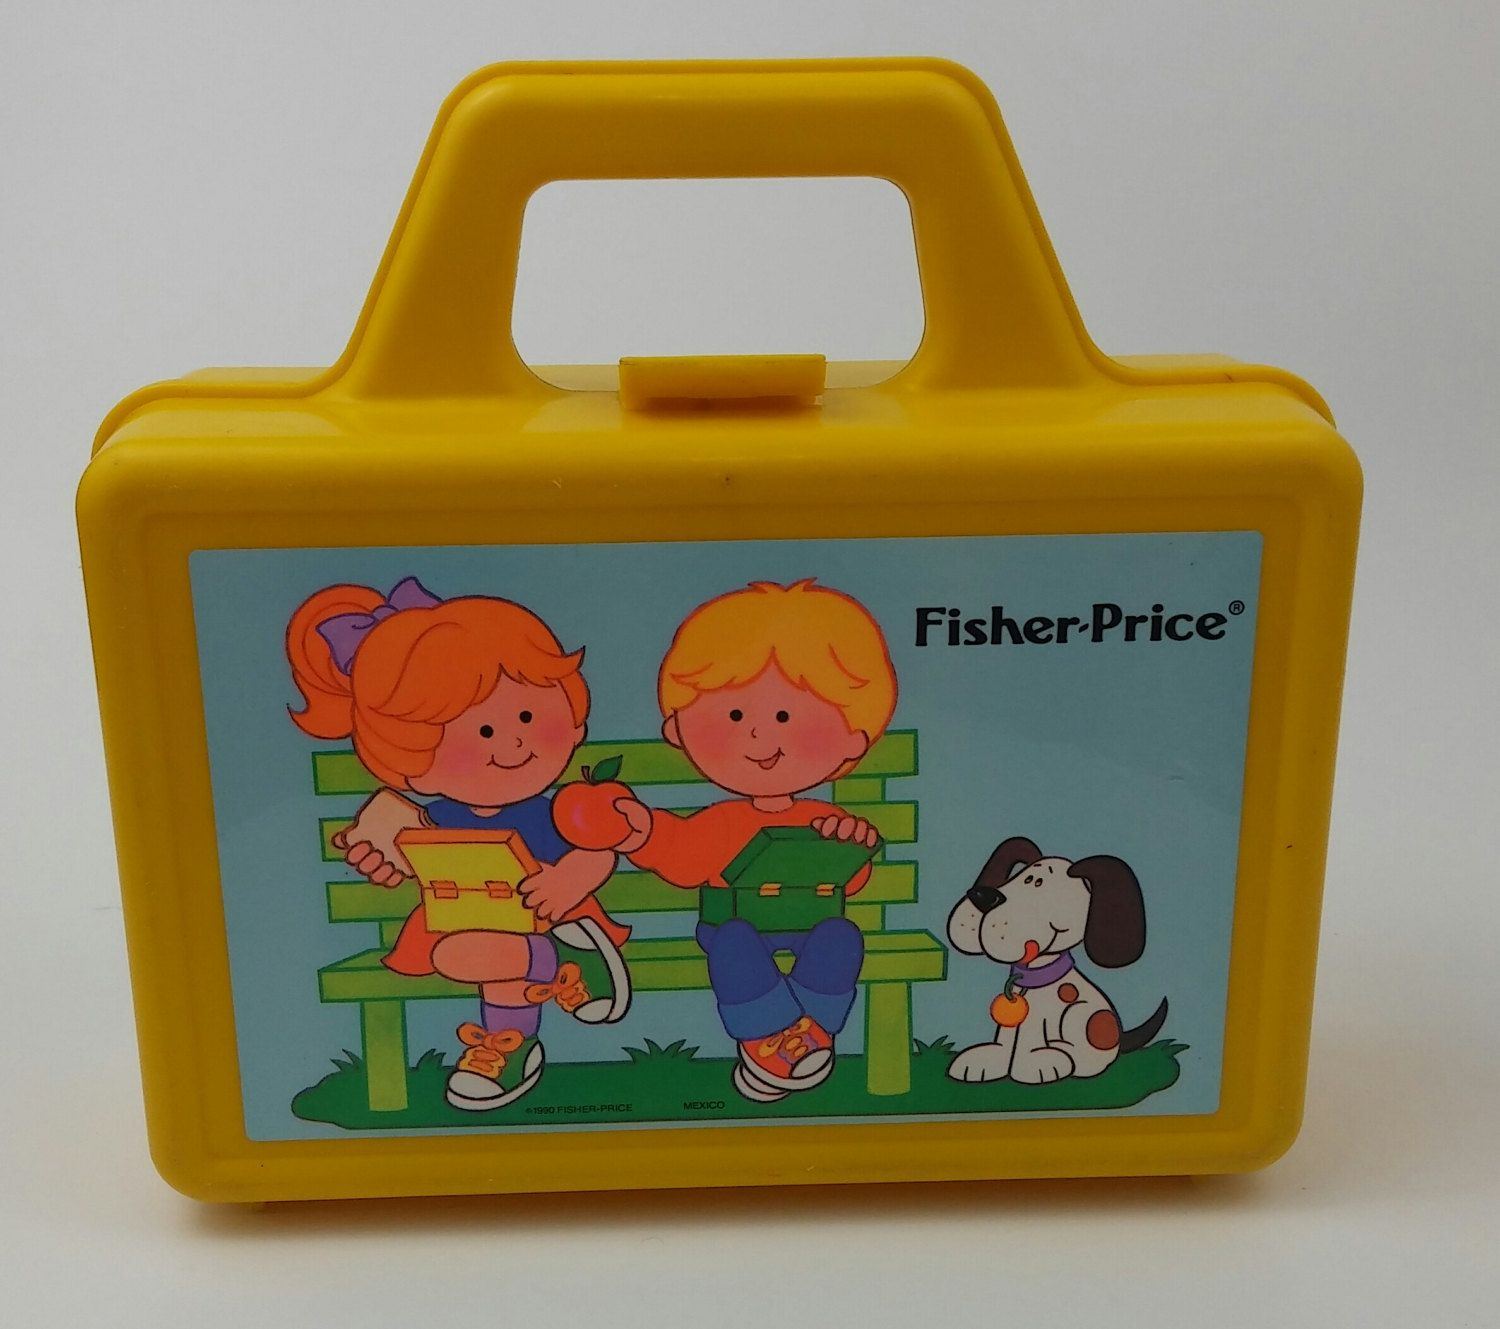 Fisher Price VIntage Lunch Pail Lunch Box 1990 Kids Child Toddler by Cooltraderguys on Etsy